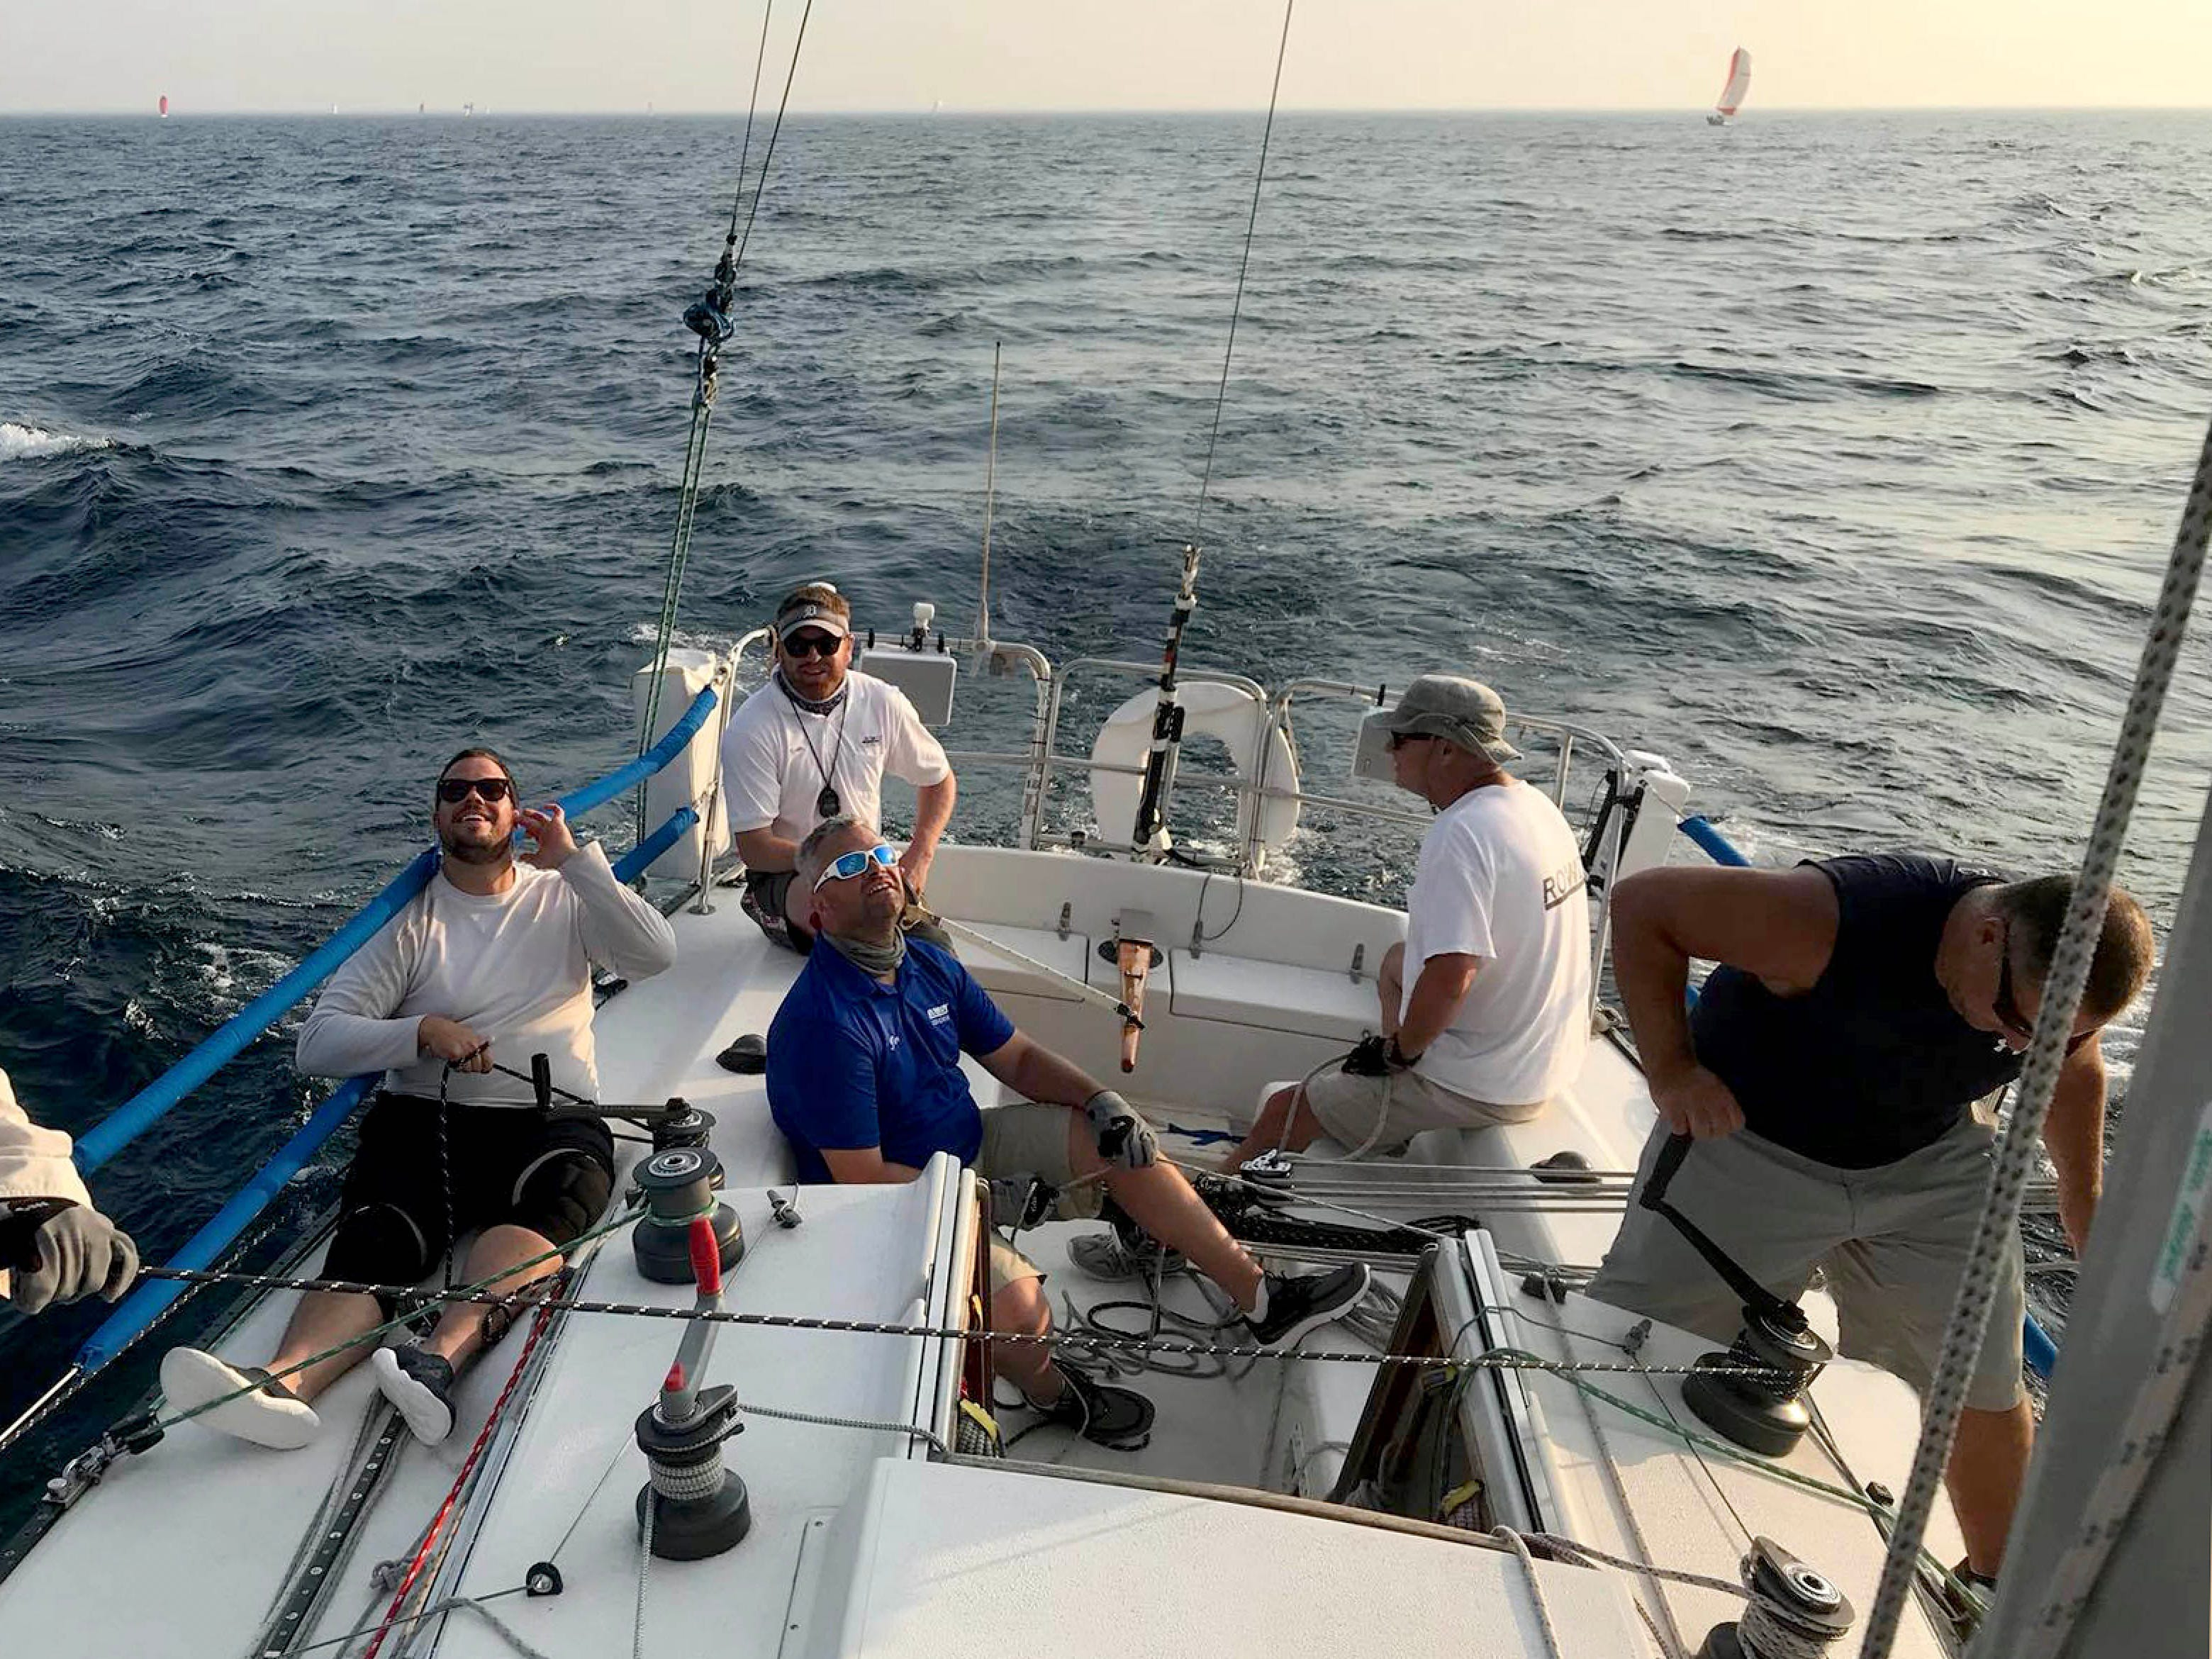 From left, Val Saph Jr. trimming on the winch, Tyson Connolly on the helm, Jim Cole, trimming, Jim Schiller and Jason Mikolayek on the winch on Rowdy, a Thomas 35 sailboat, in Lake Huron during the during the 2017 Port Huron-to-Mackinac race.